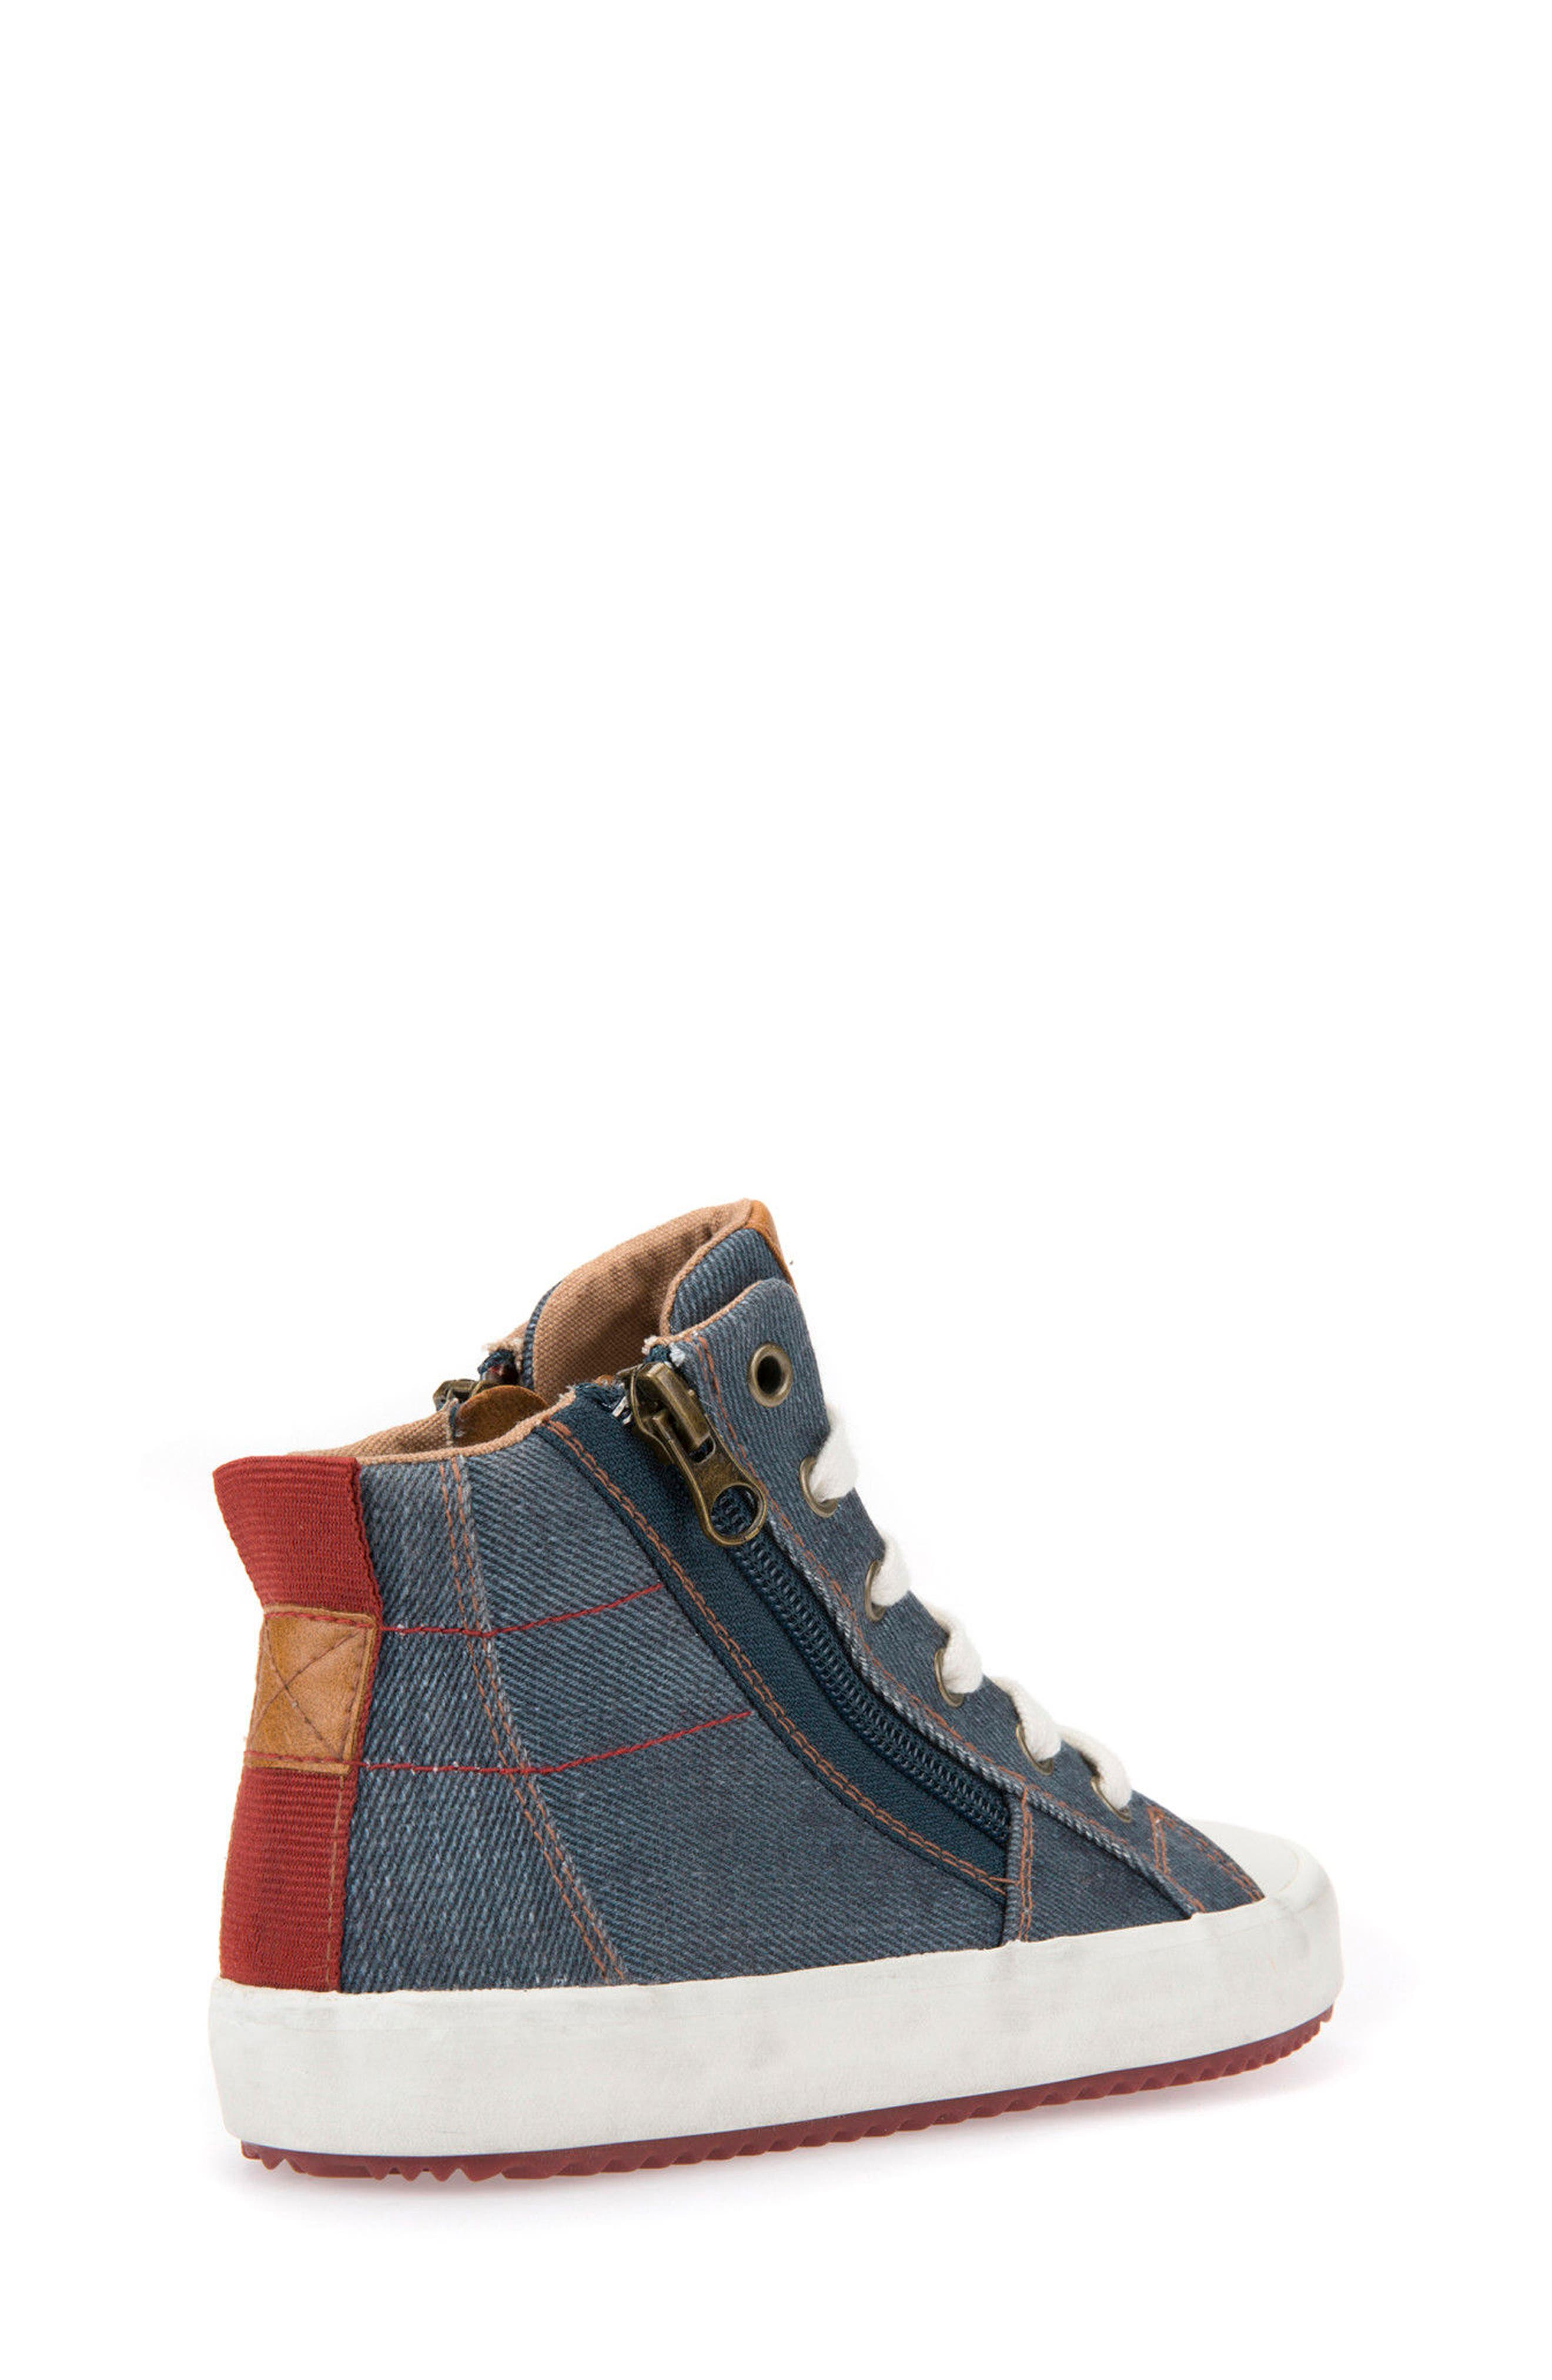 Alonisso High Top Sneaker,                             Alternate thumbnail 2, color,                             426